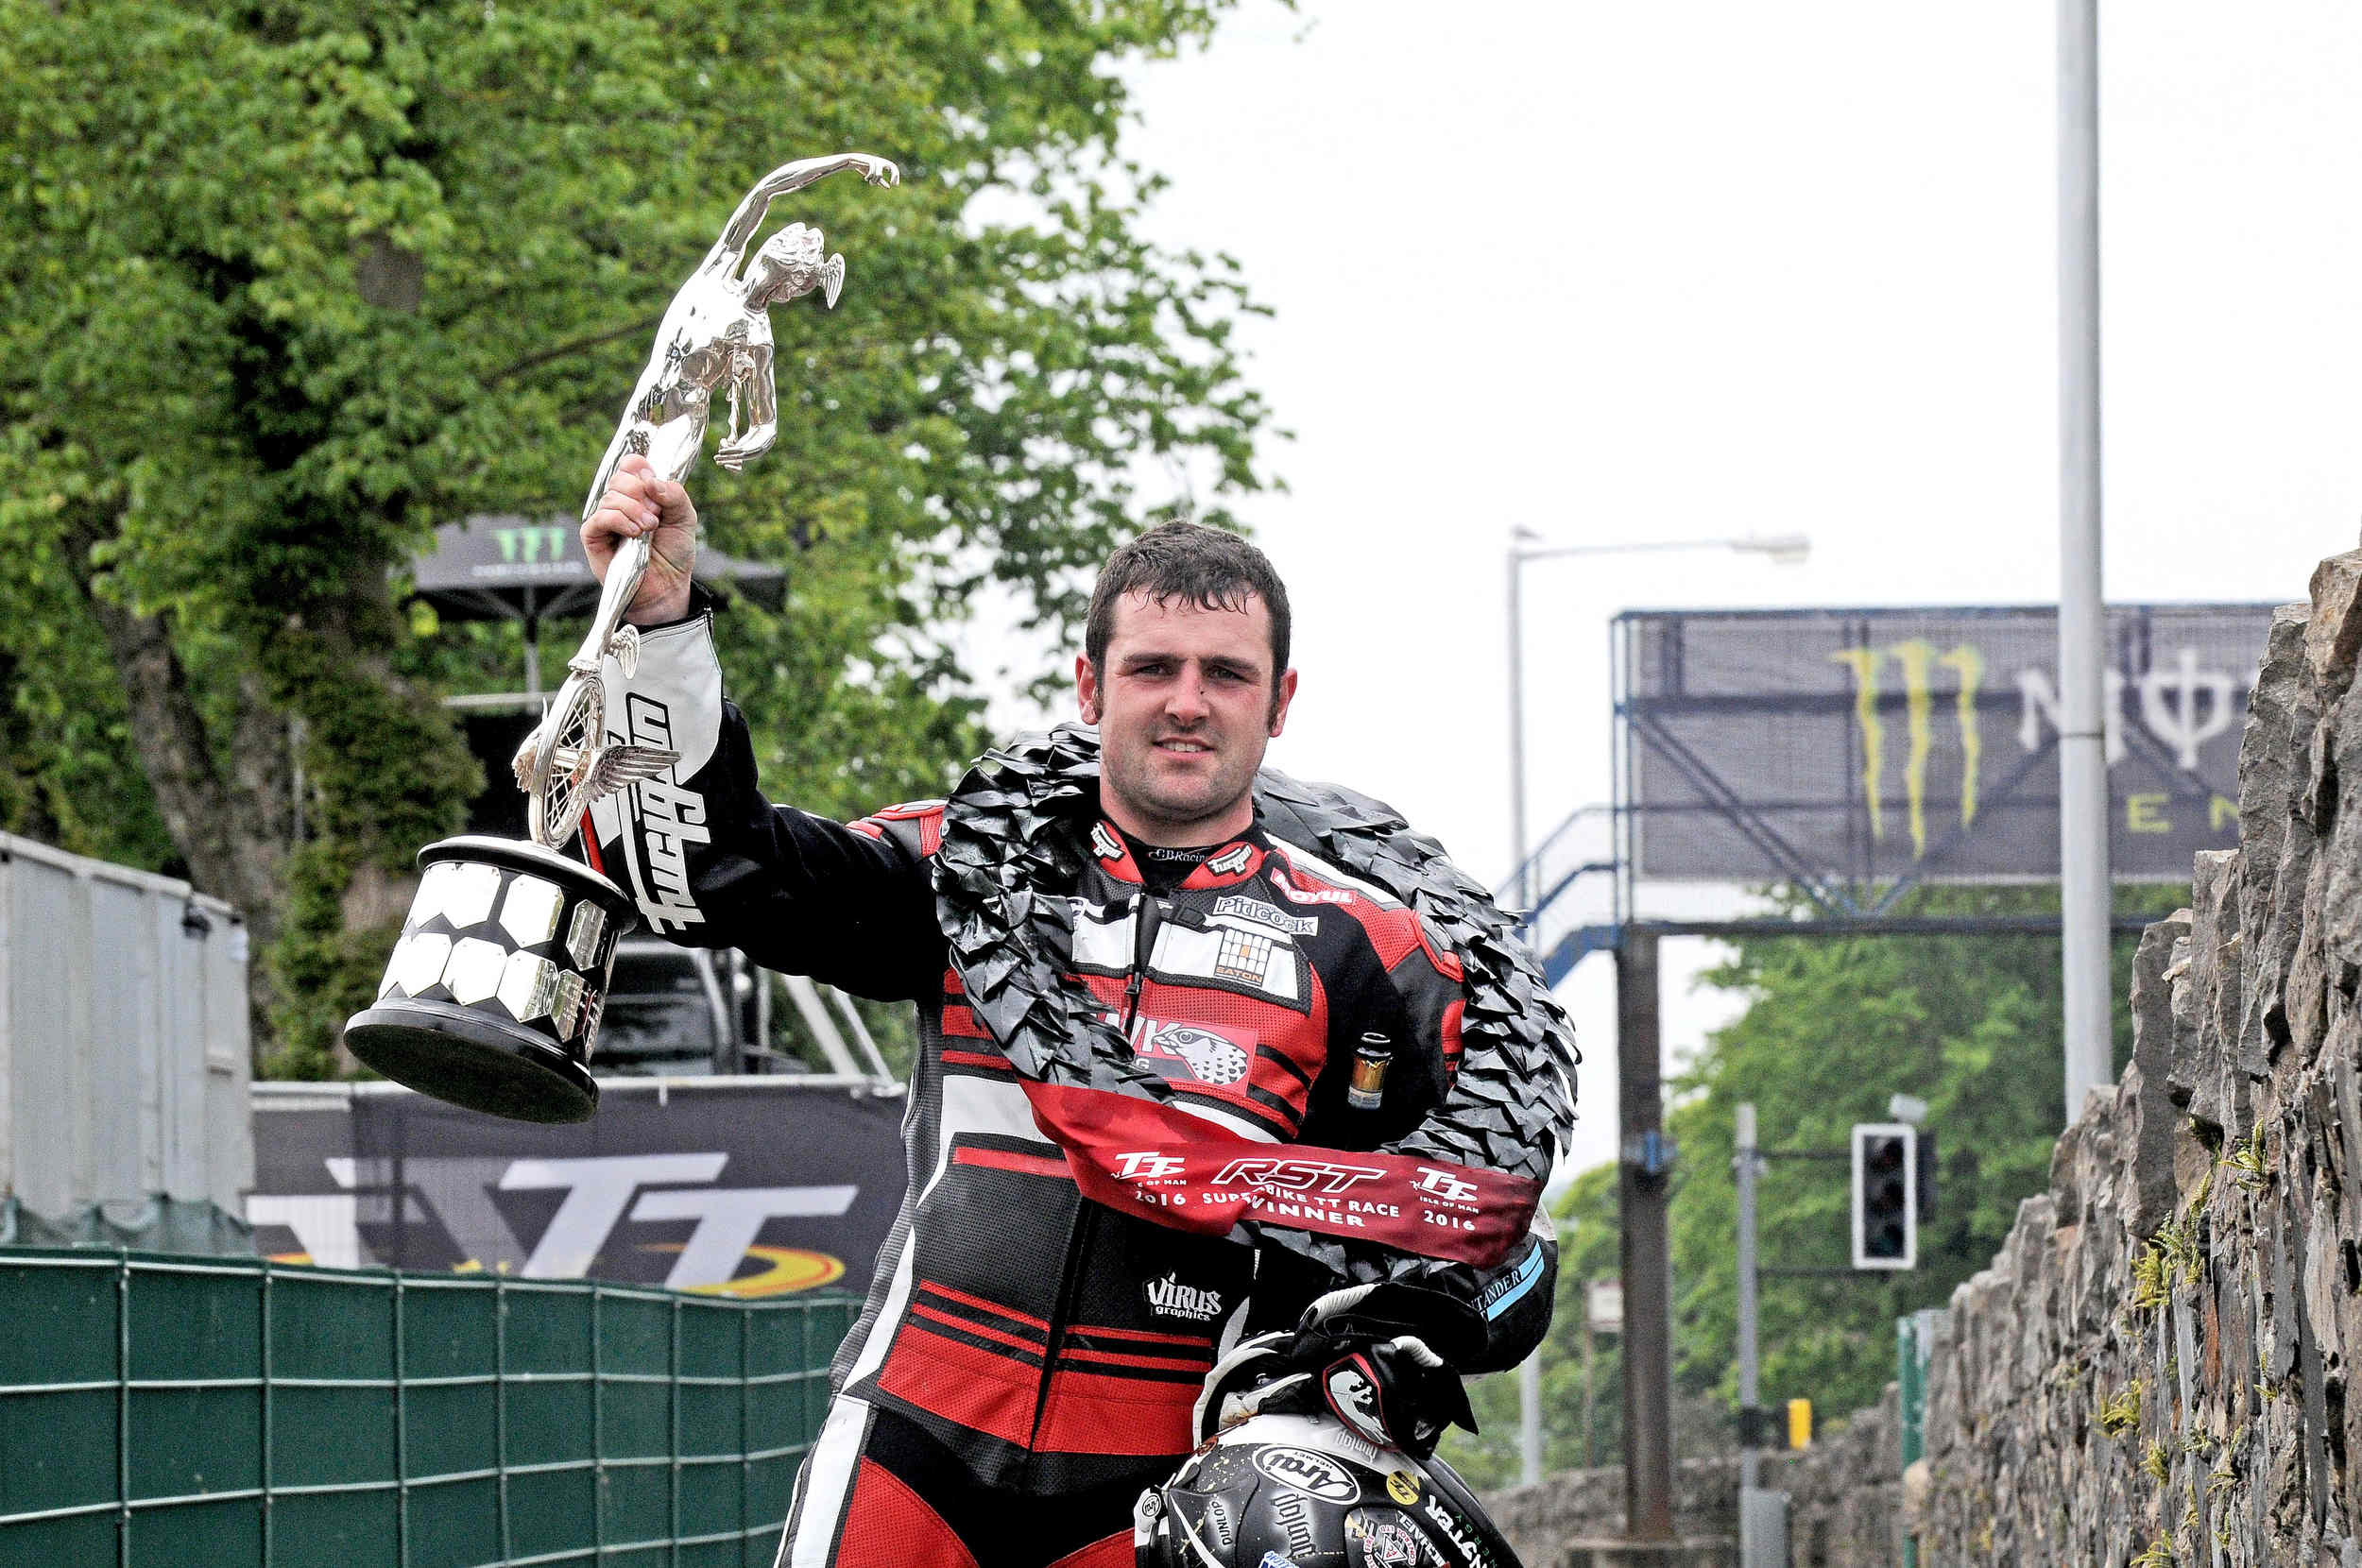 Superbike TT 2016 winner Michael Dunlop